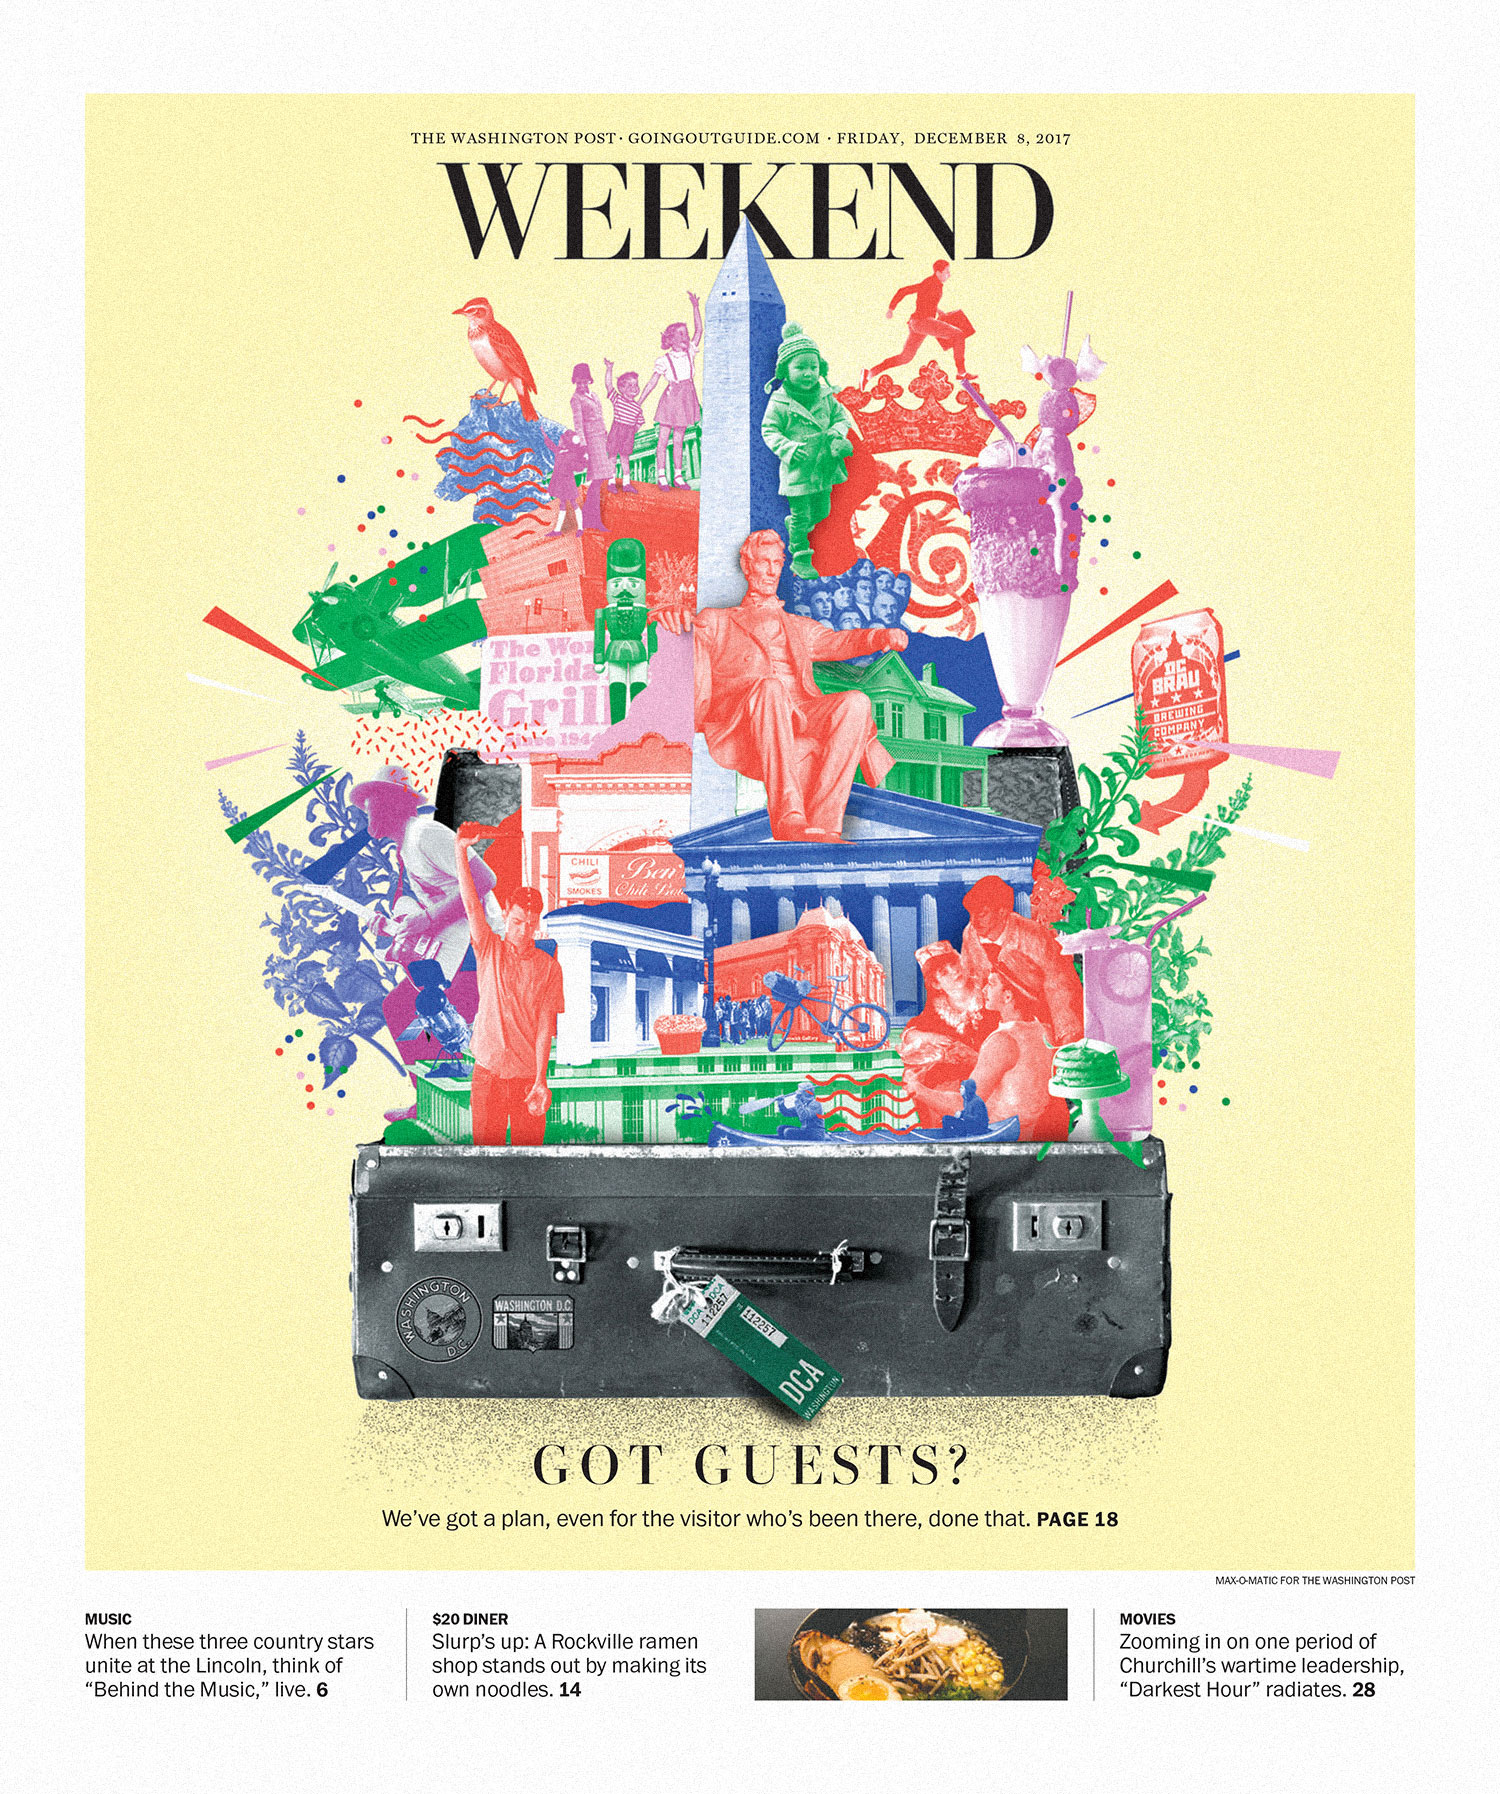 Washington Post Weekend